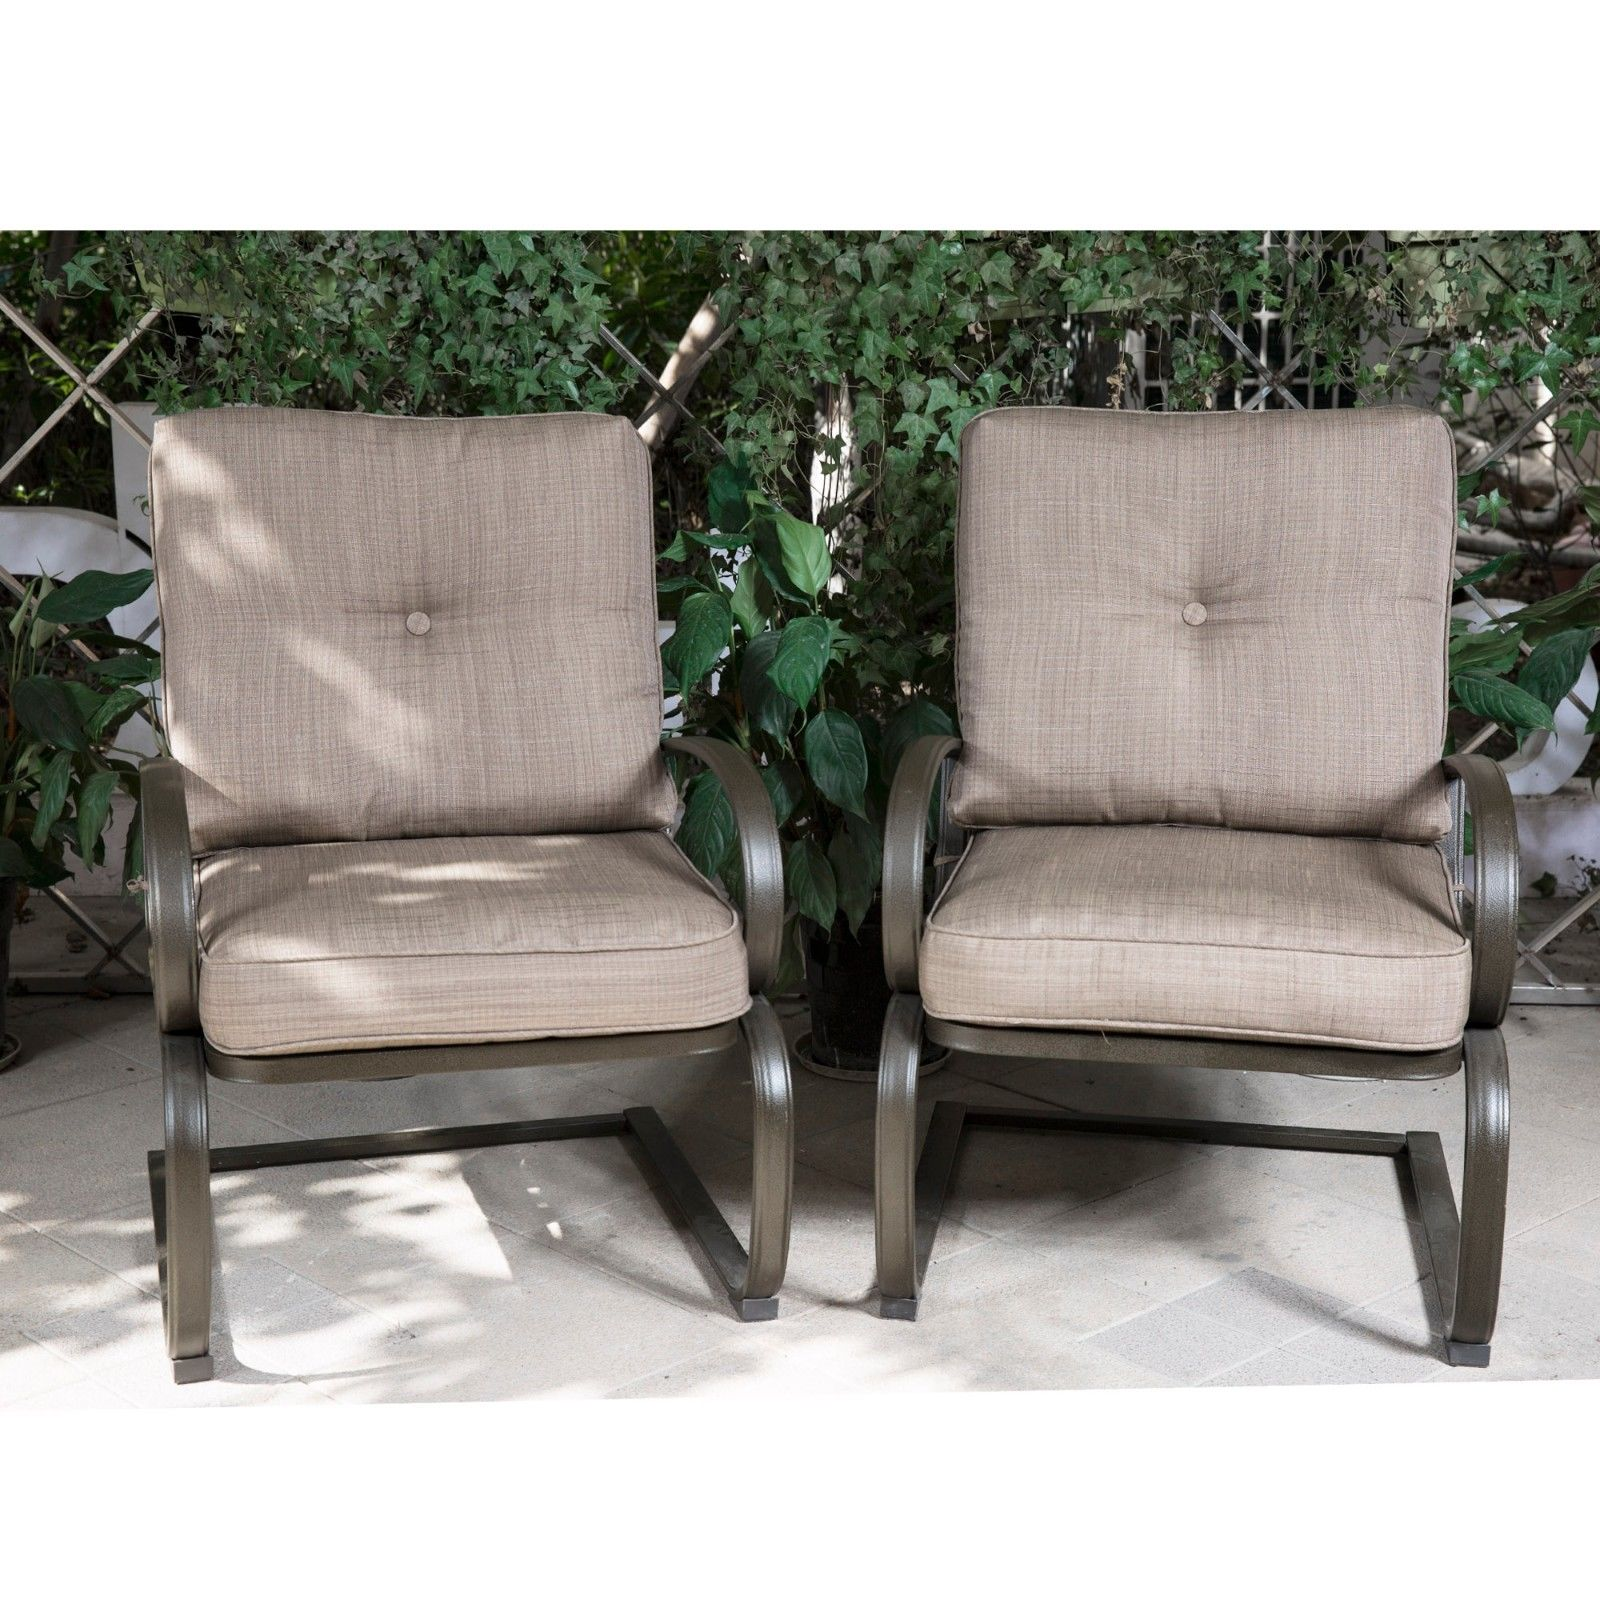 cushions spring chair reviews chairs club hazelwood wayfair home pdx with jeremiah outdoor